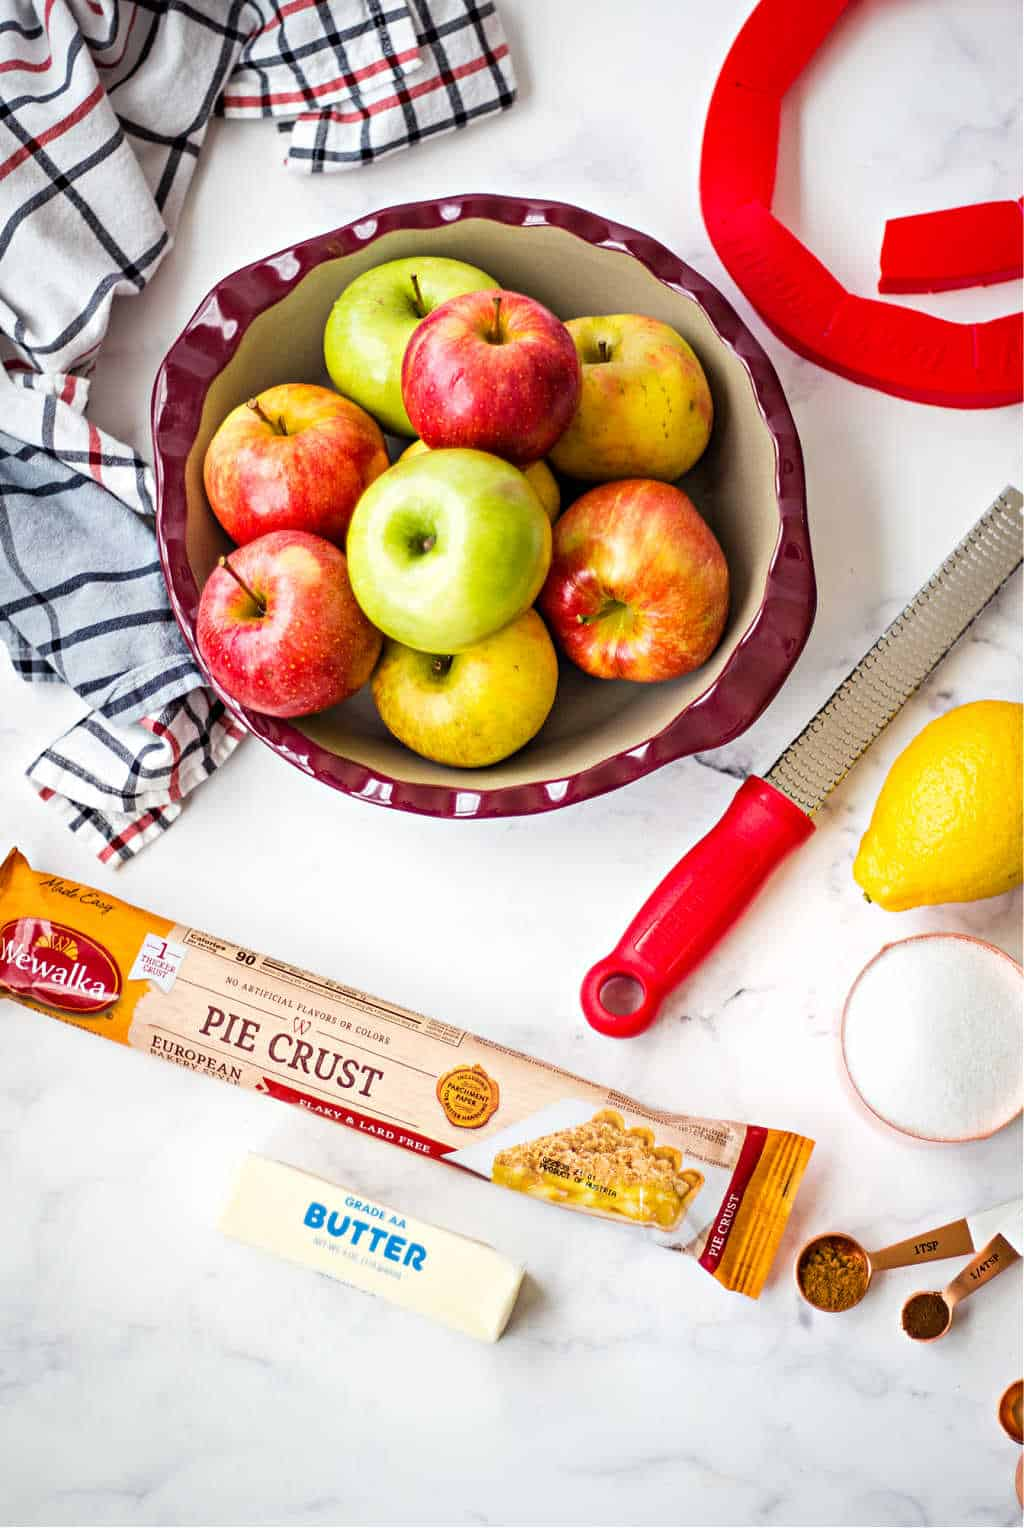 ingredients for apple crumble pie